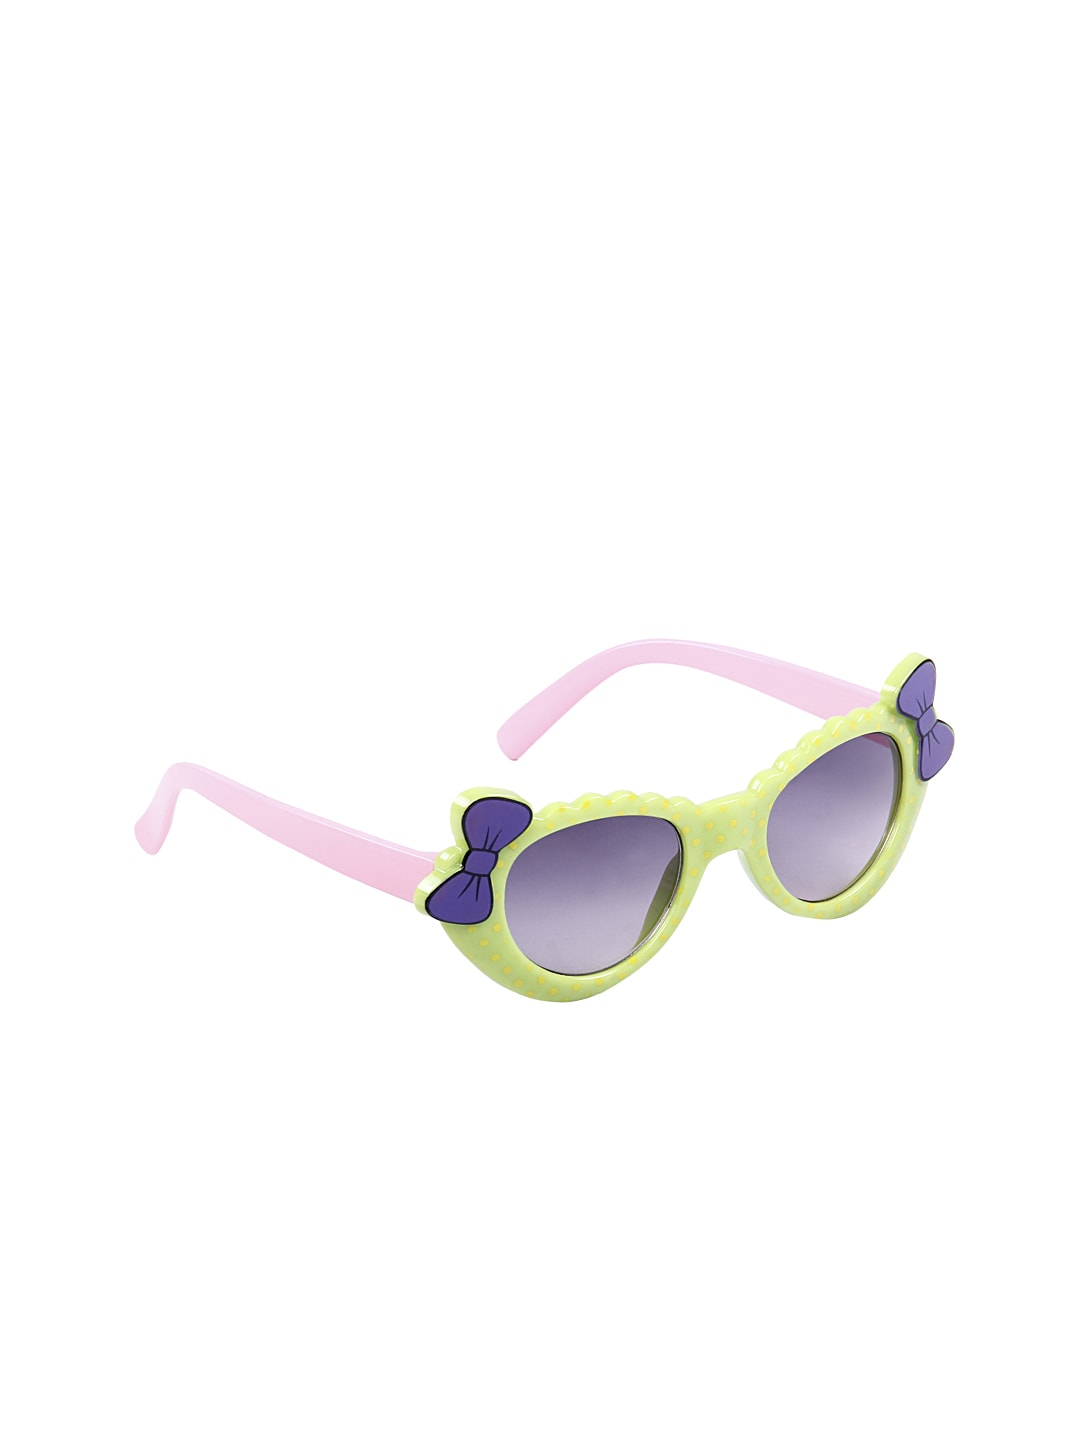 4354cec85b Kids Sunglasses Price List in India 4 April 2019